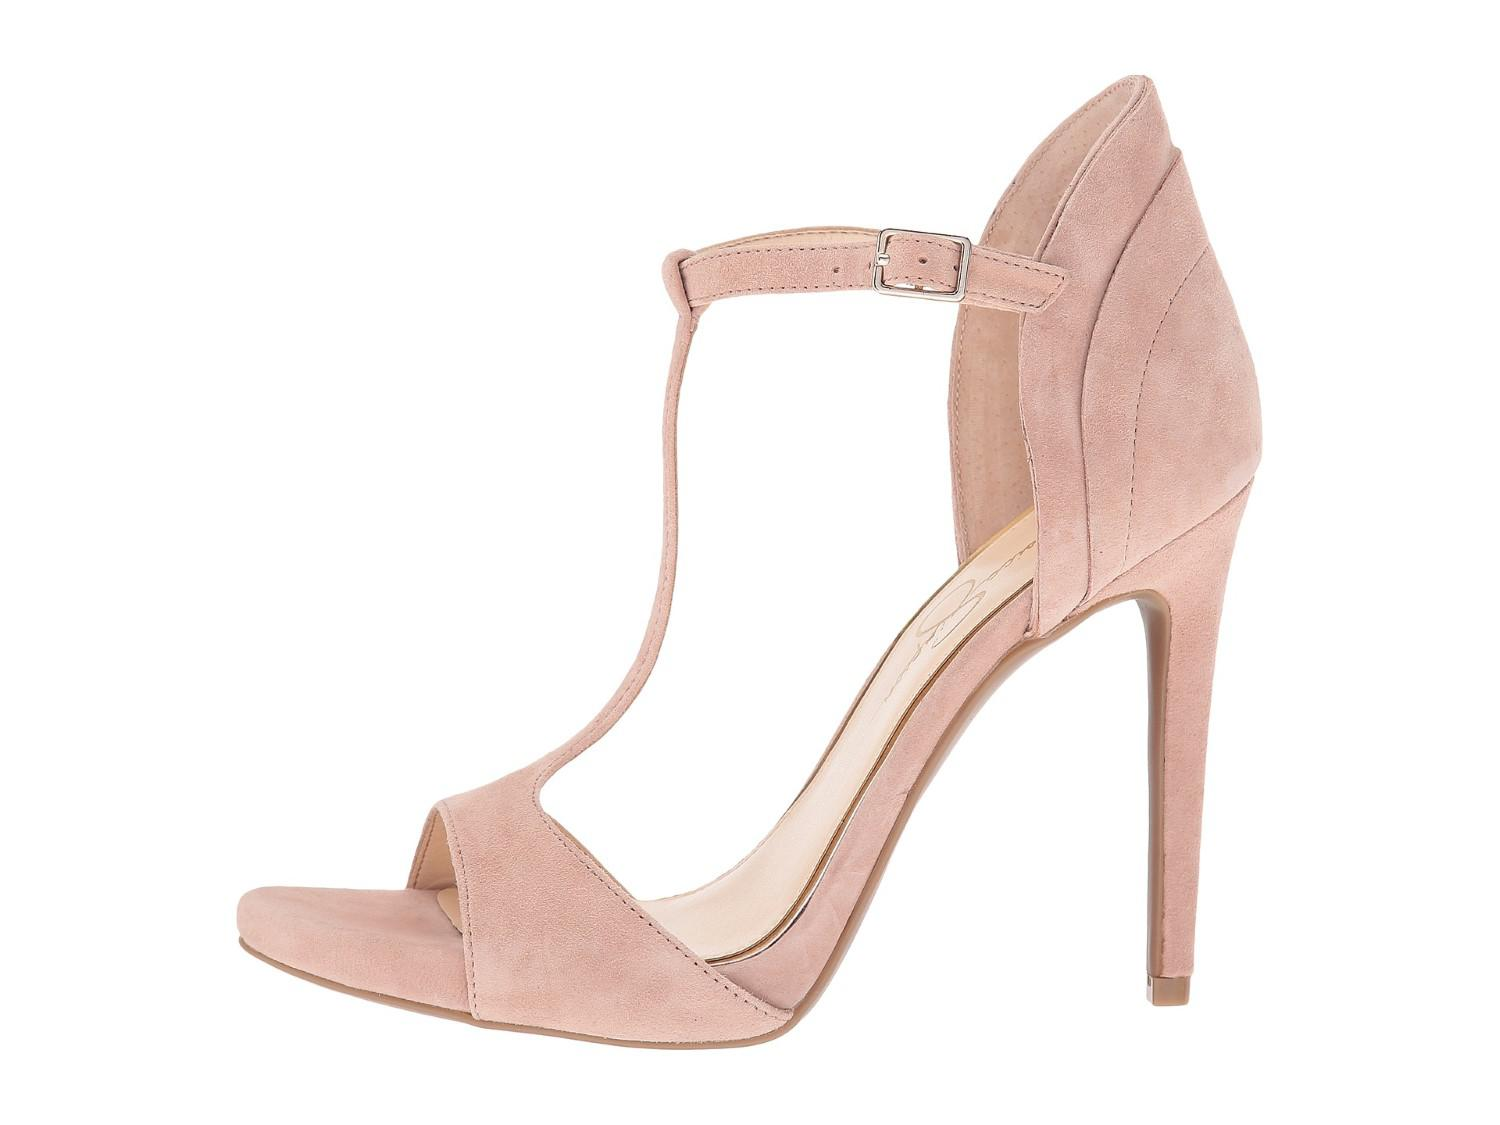 05a7cce4b736 Lyst - Jessica Simpson Bethani Wedge Pump Dark Sandbar in Pink